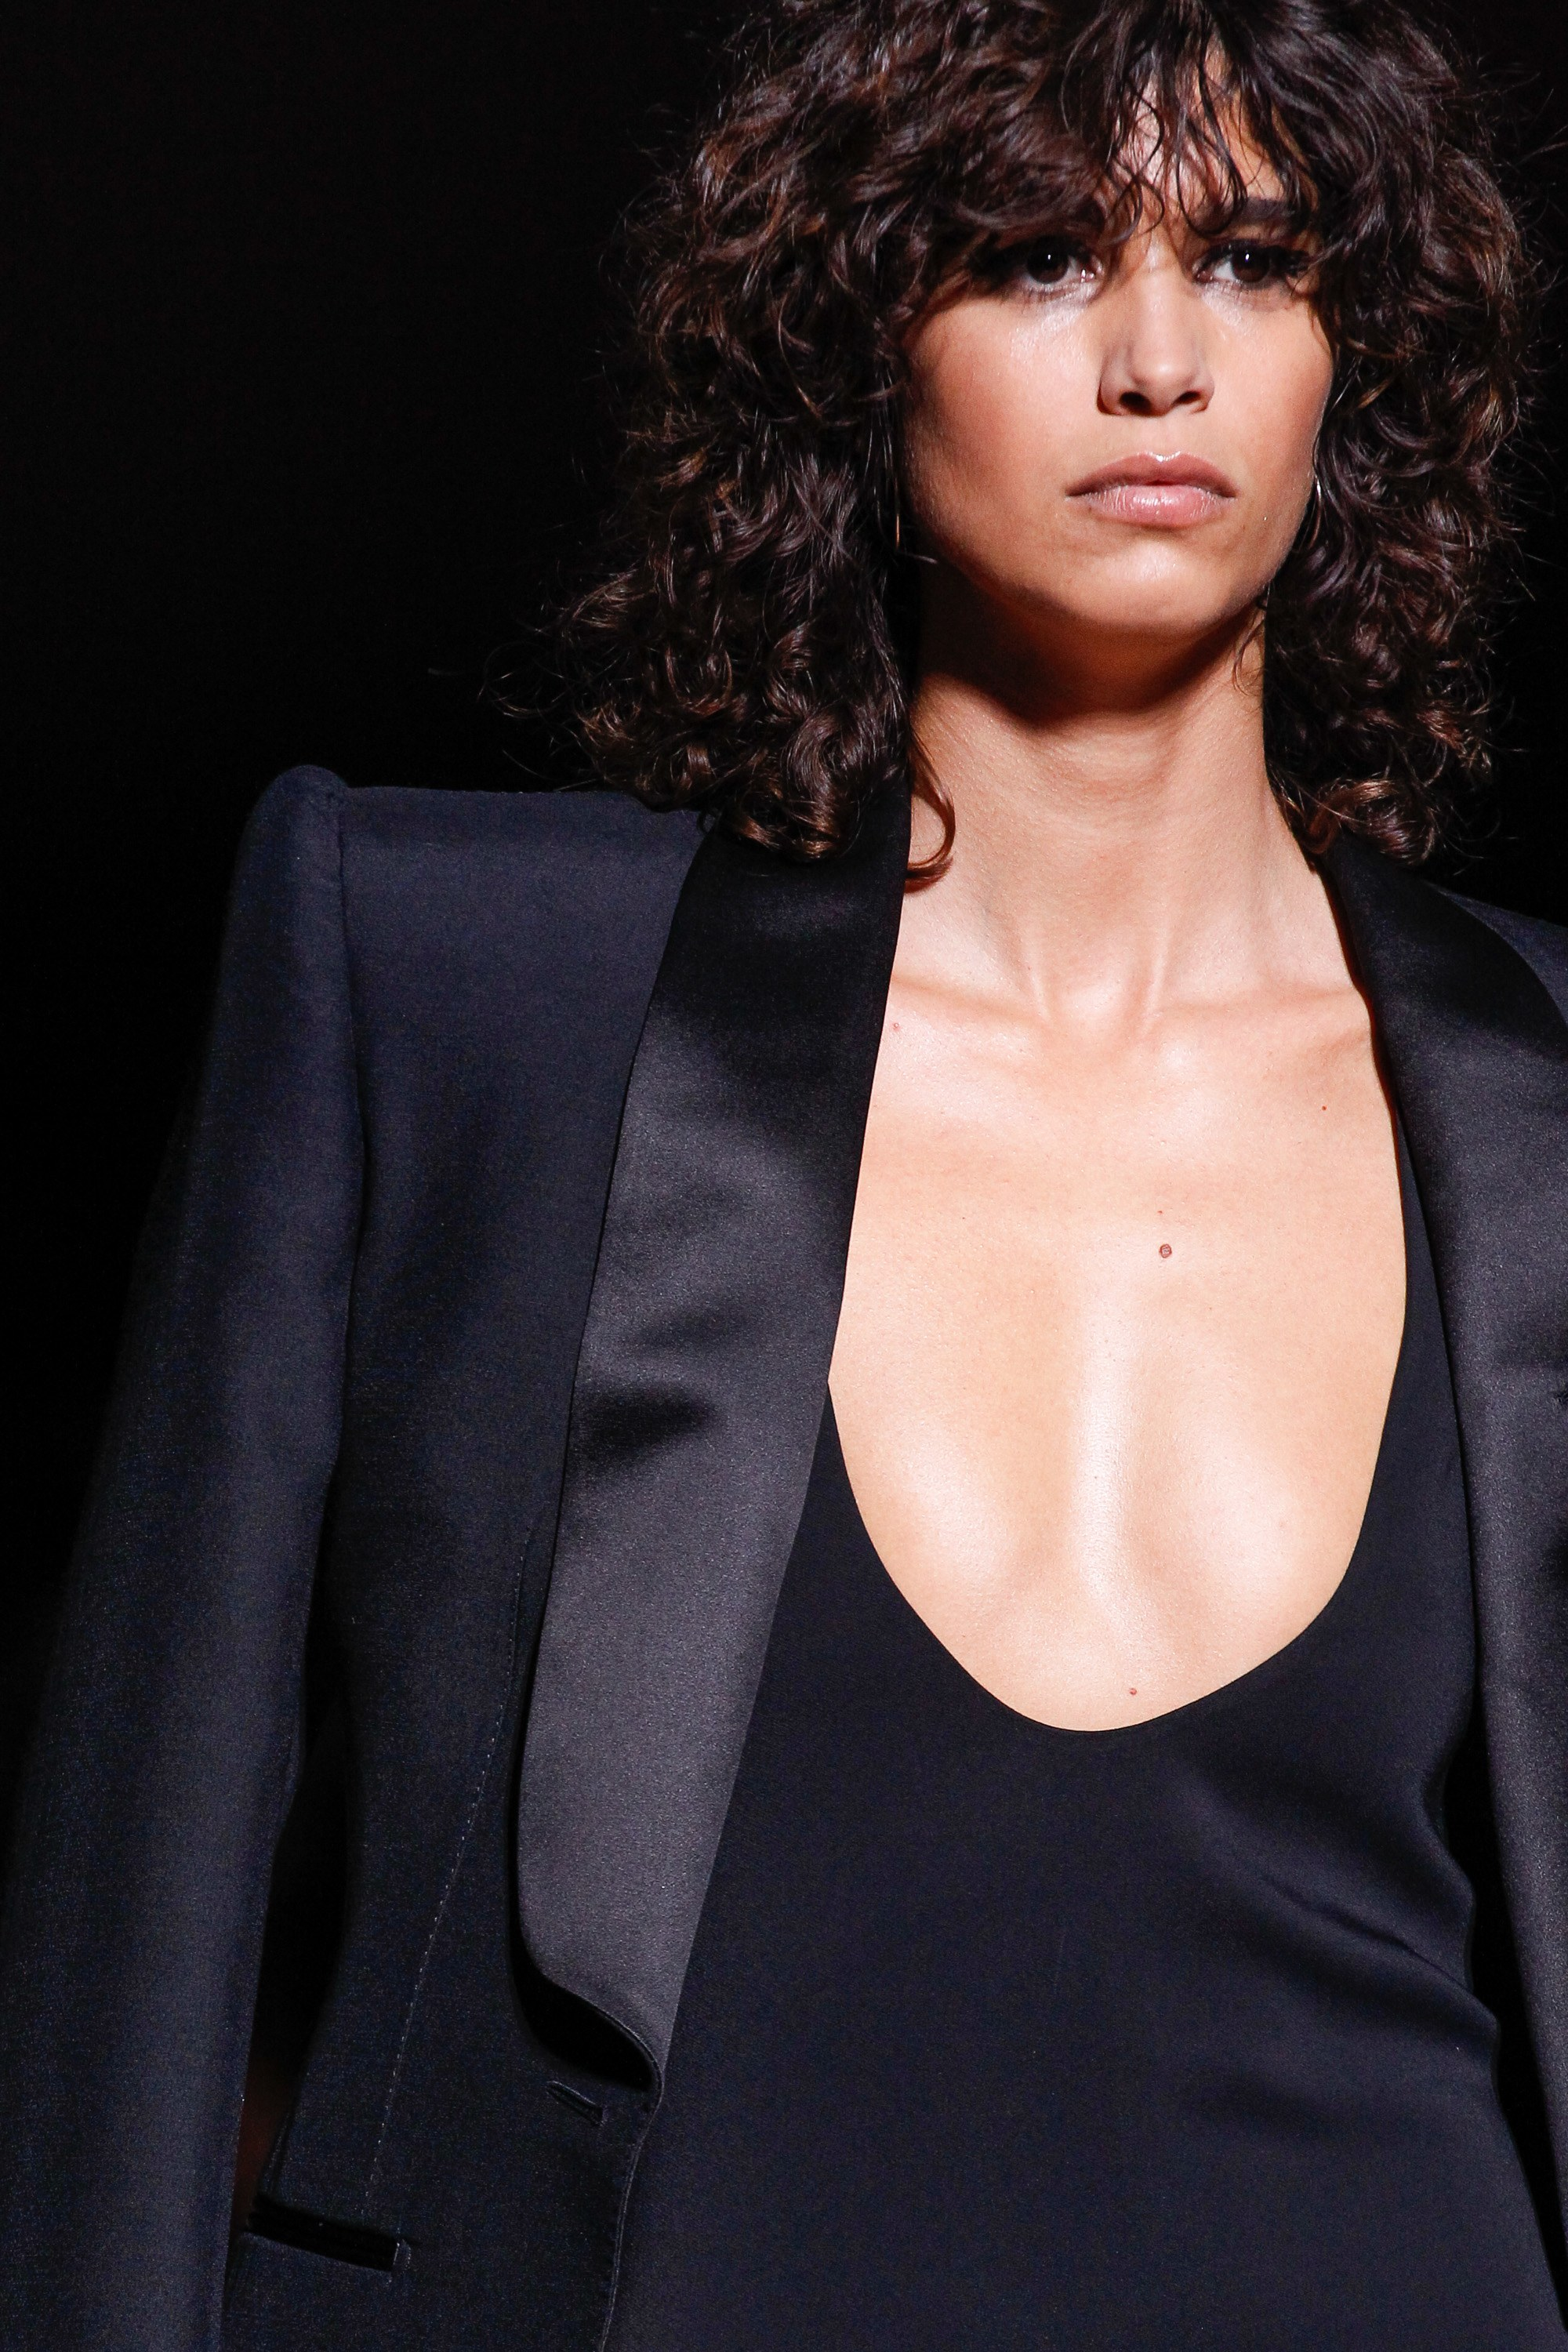 Tom Ford Ready-to-Wear - S/S 18